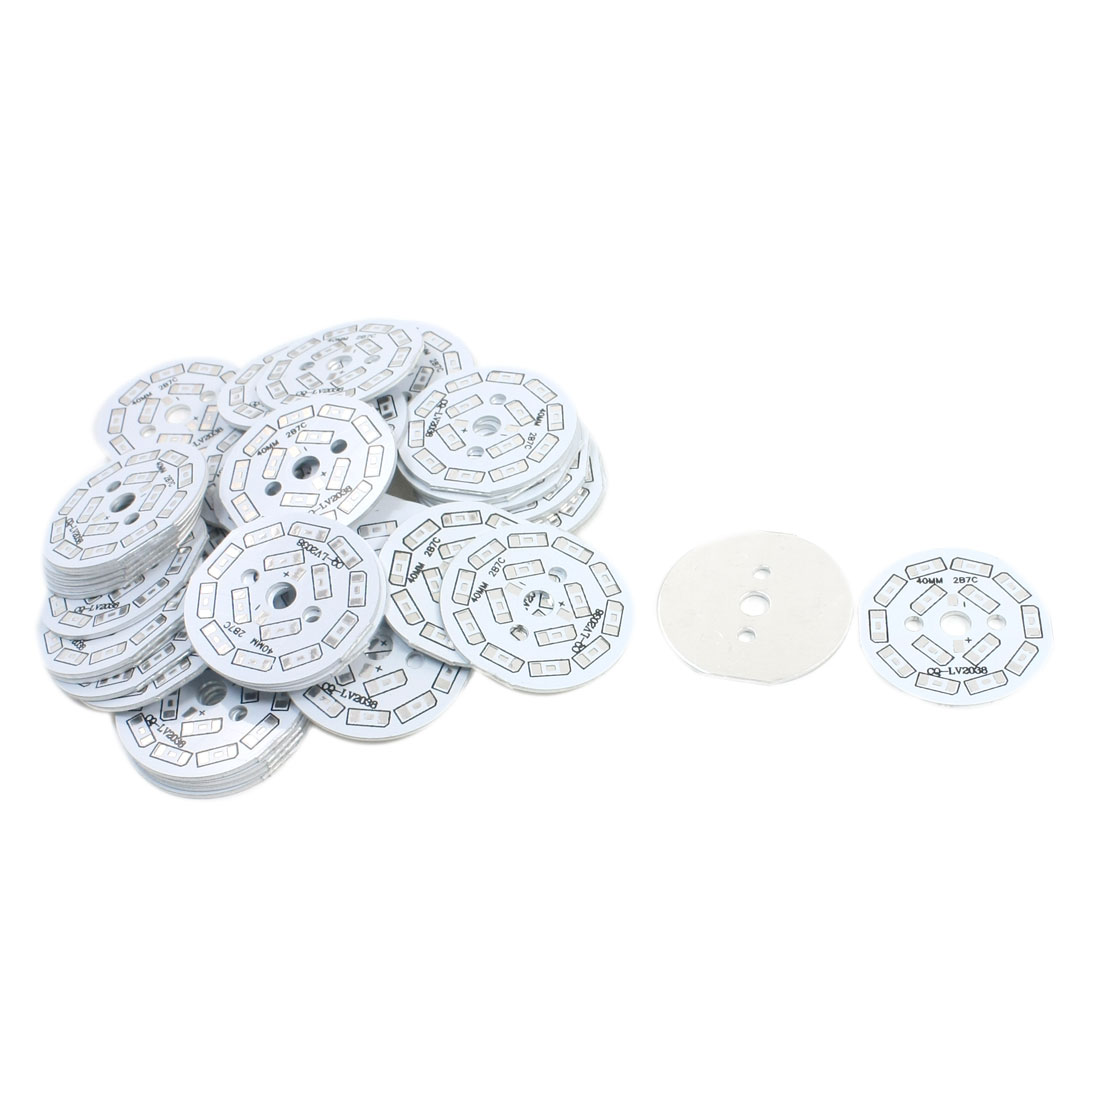 50Pcs 14 x 1/2W 5730 SMD LED High Power DIY Circle Aluminum PCB Circuit Board 40mm Diameter